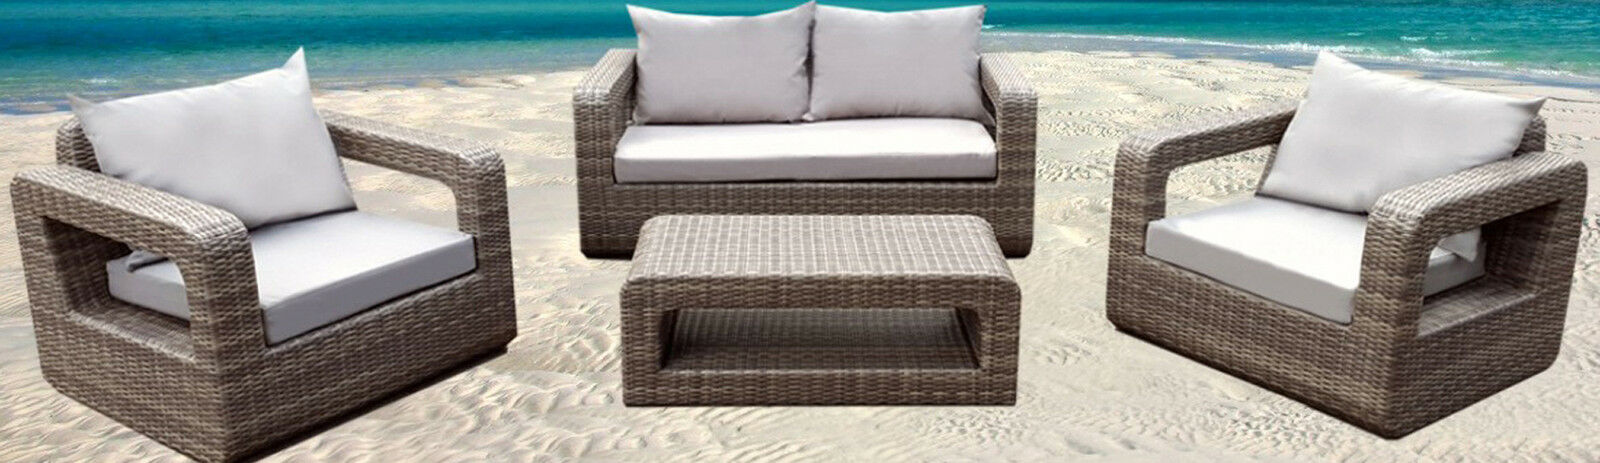 jaydenoutdoorfurniture